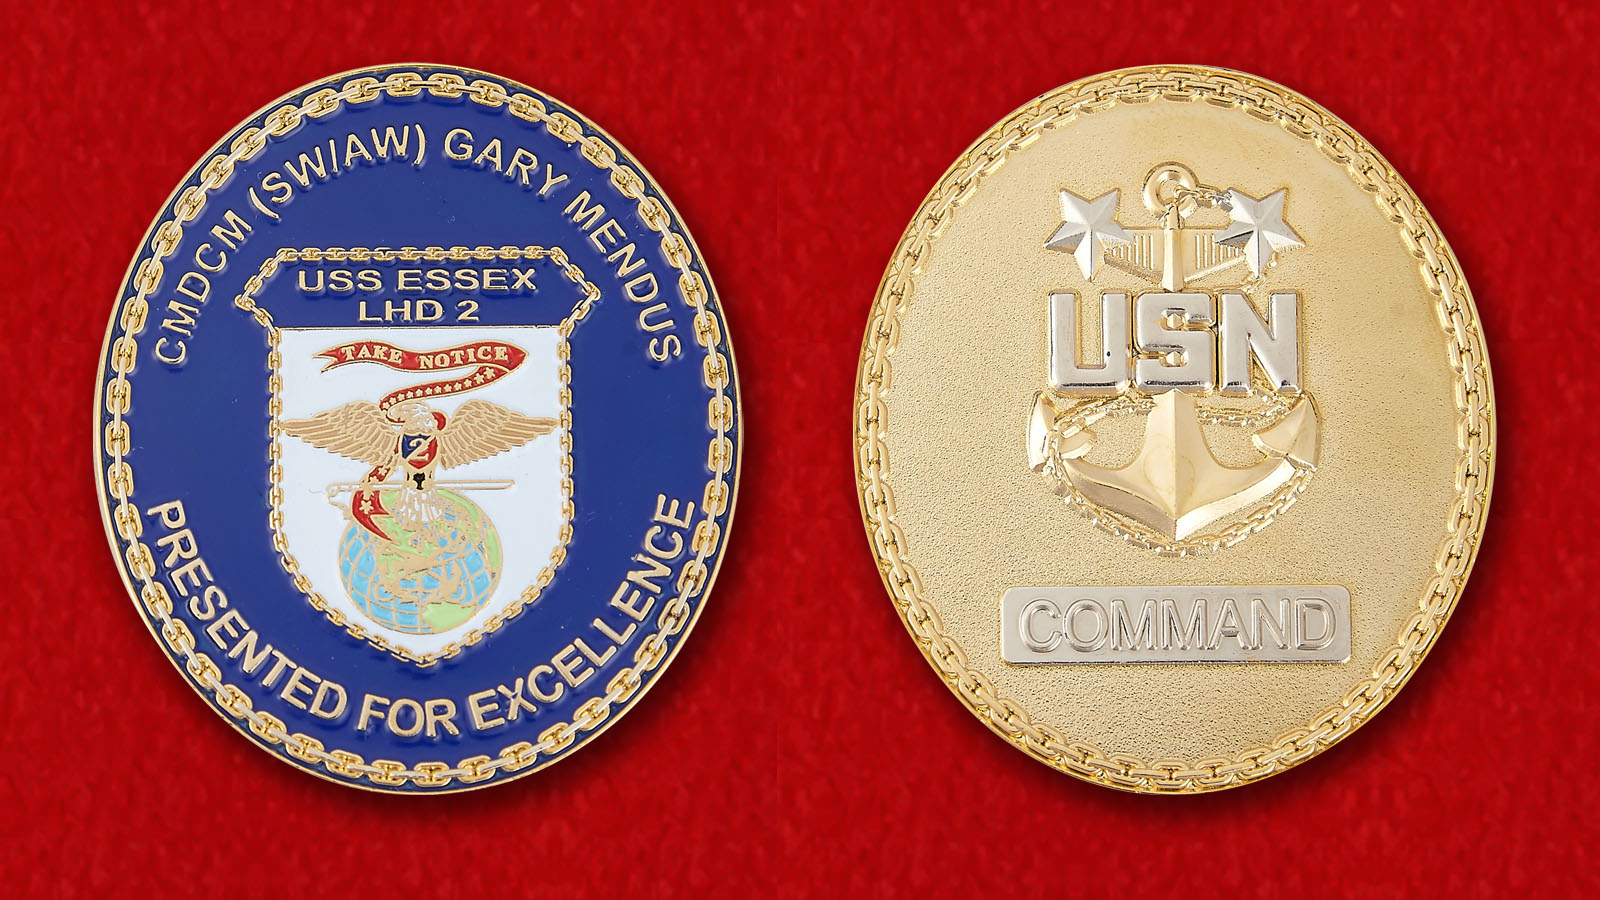 Presented For Excellence CMDCM (SWIAW) Gari Mendus USS Essex (LHD-2) Challenge Сoin - obverse and reverse